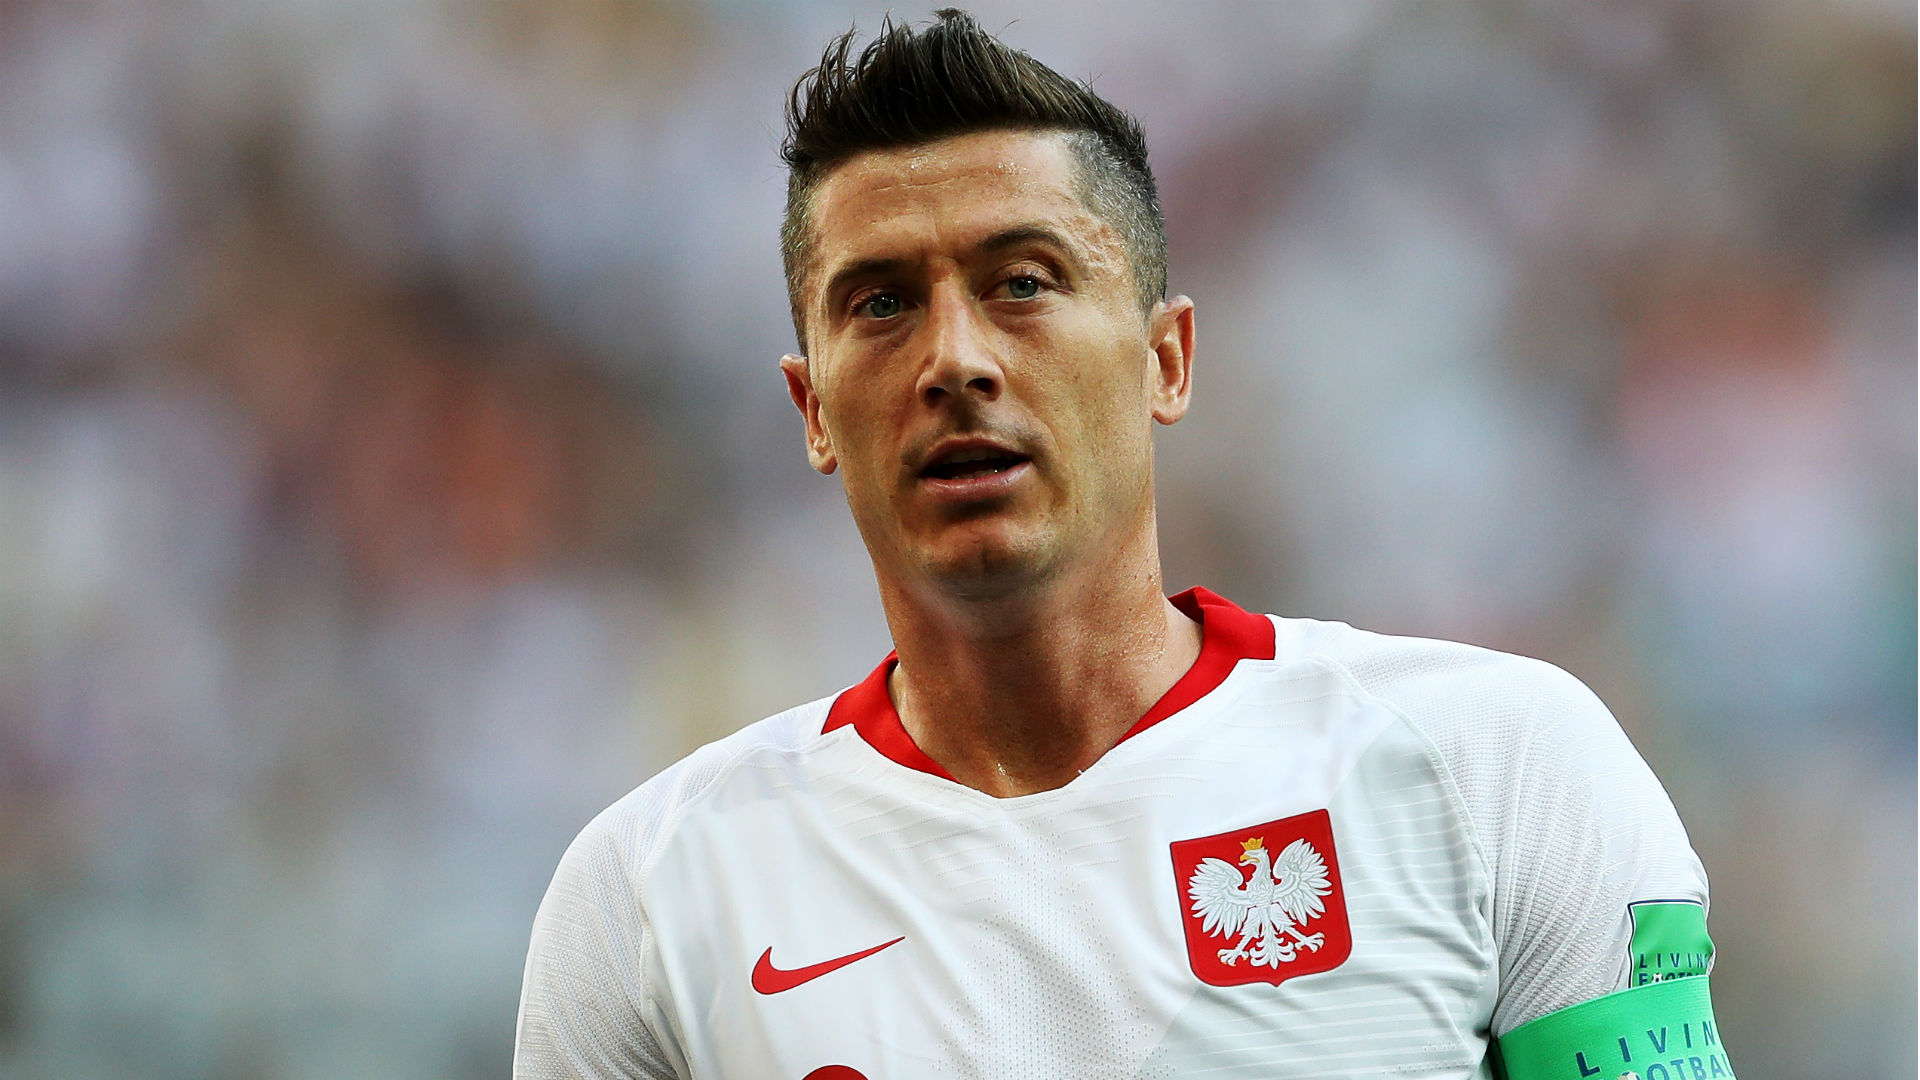 Mancini hails Lewandowski as one of world's best and defends Immobile's Italy record